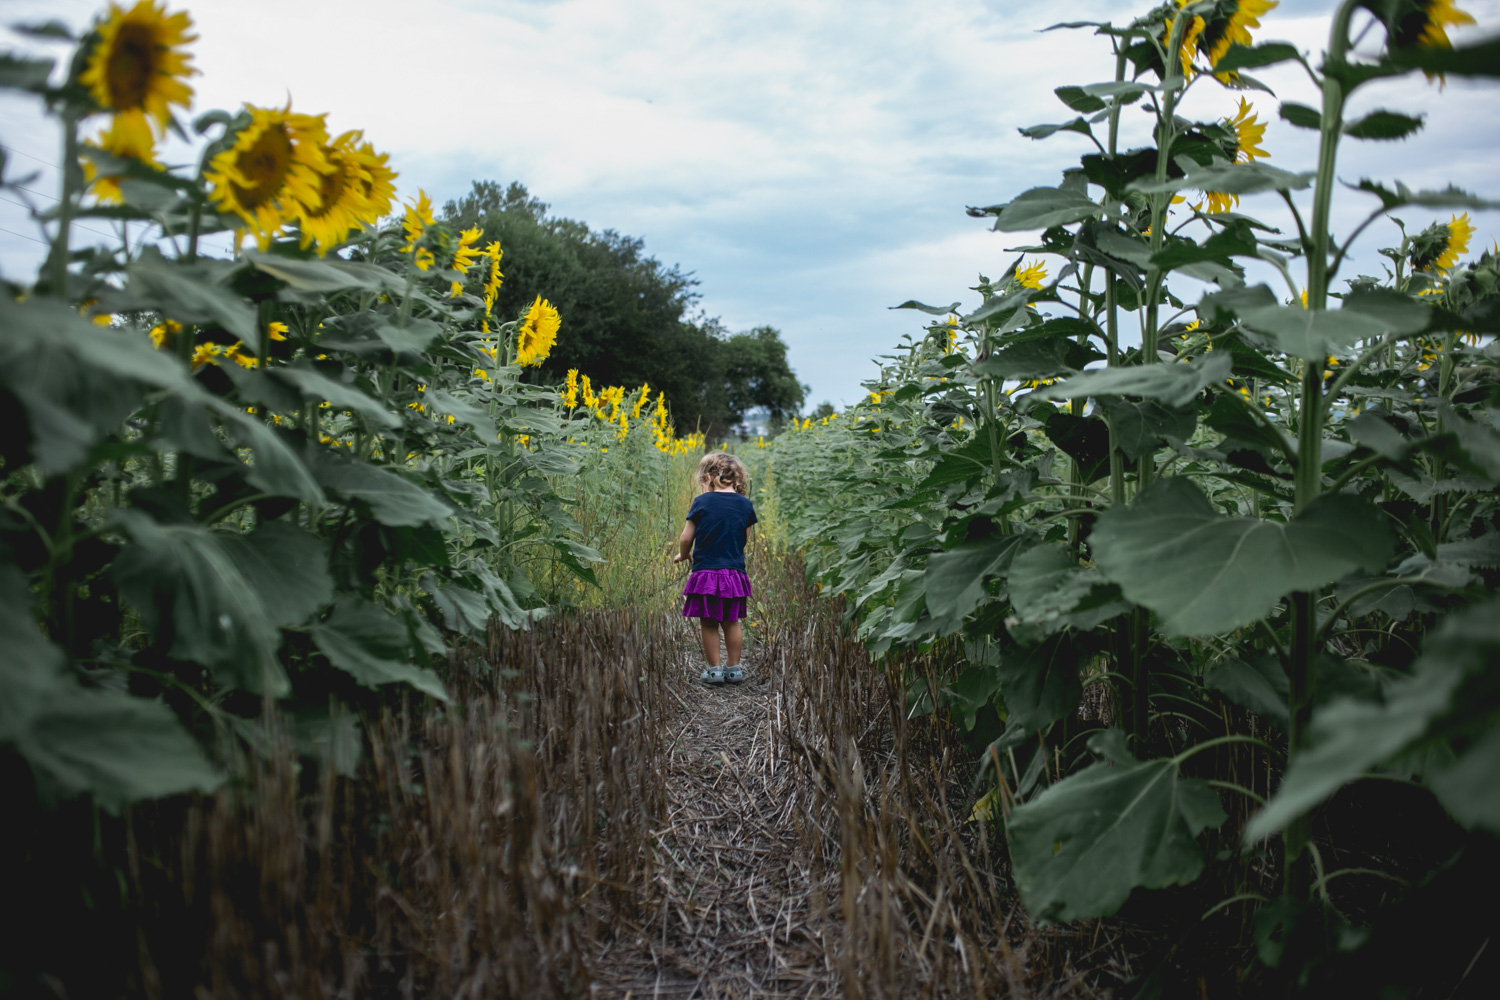 Girl walking in sunflower field during a mini session at Britt's Garden Acres and Britt's Farm in Manhattan Kansas. The perfect location for Fall Family Photos, captured by Renee McDaniel Photography.